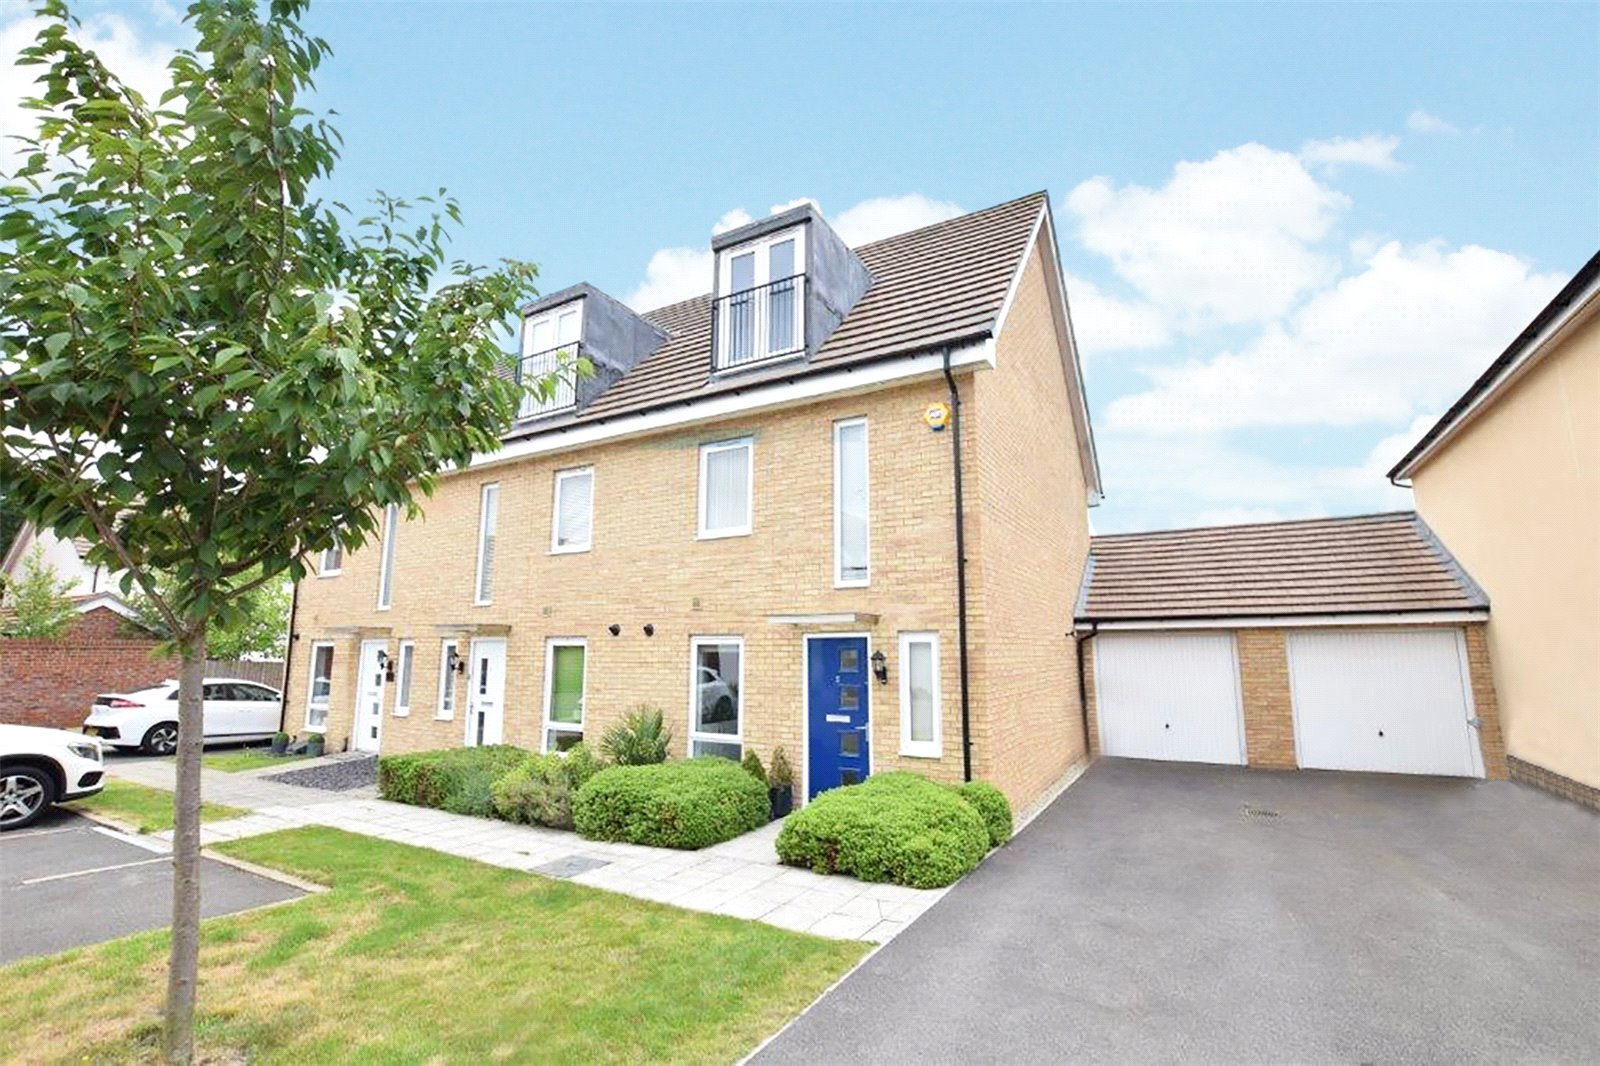 3 Bedrooms End Of Terrace House for sale in Vickers Row, Bracknell, Berkshire, RG12